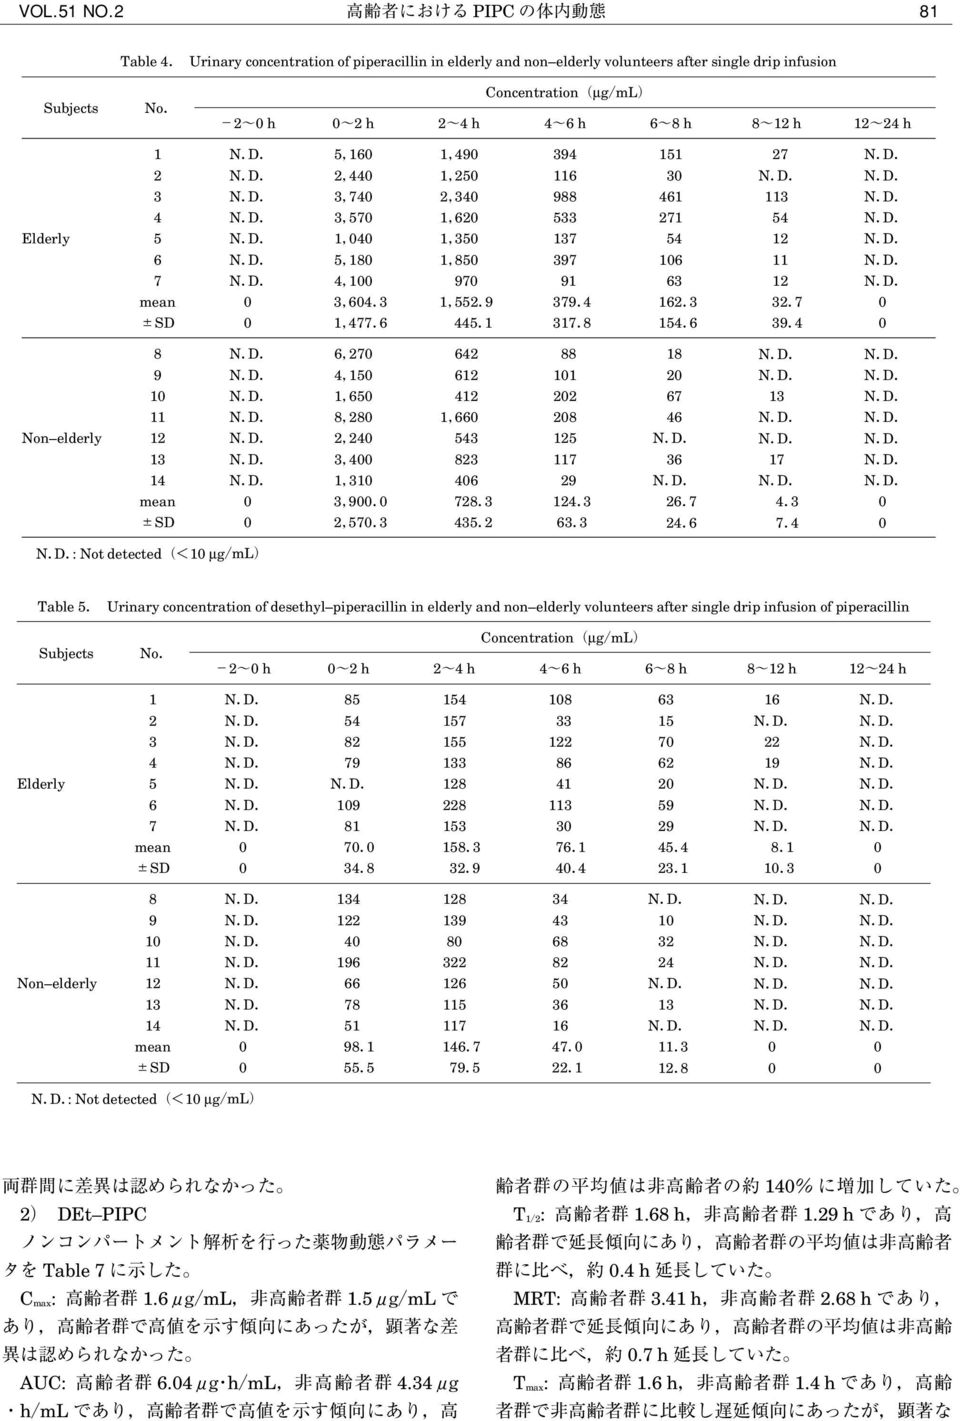 piperacillin in elderly and non elderly volunteers after single drip infusion of piperacillin Concentration